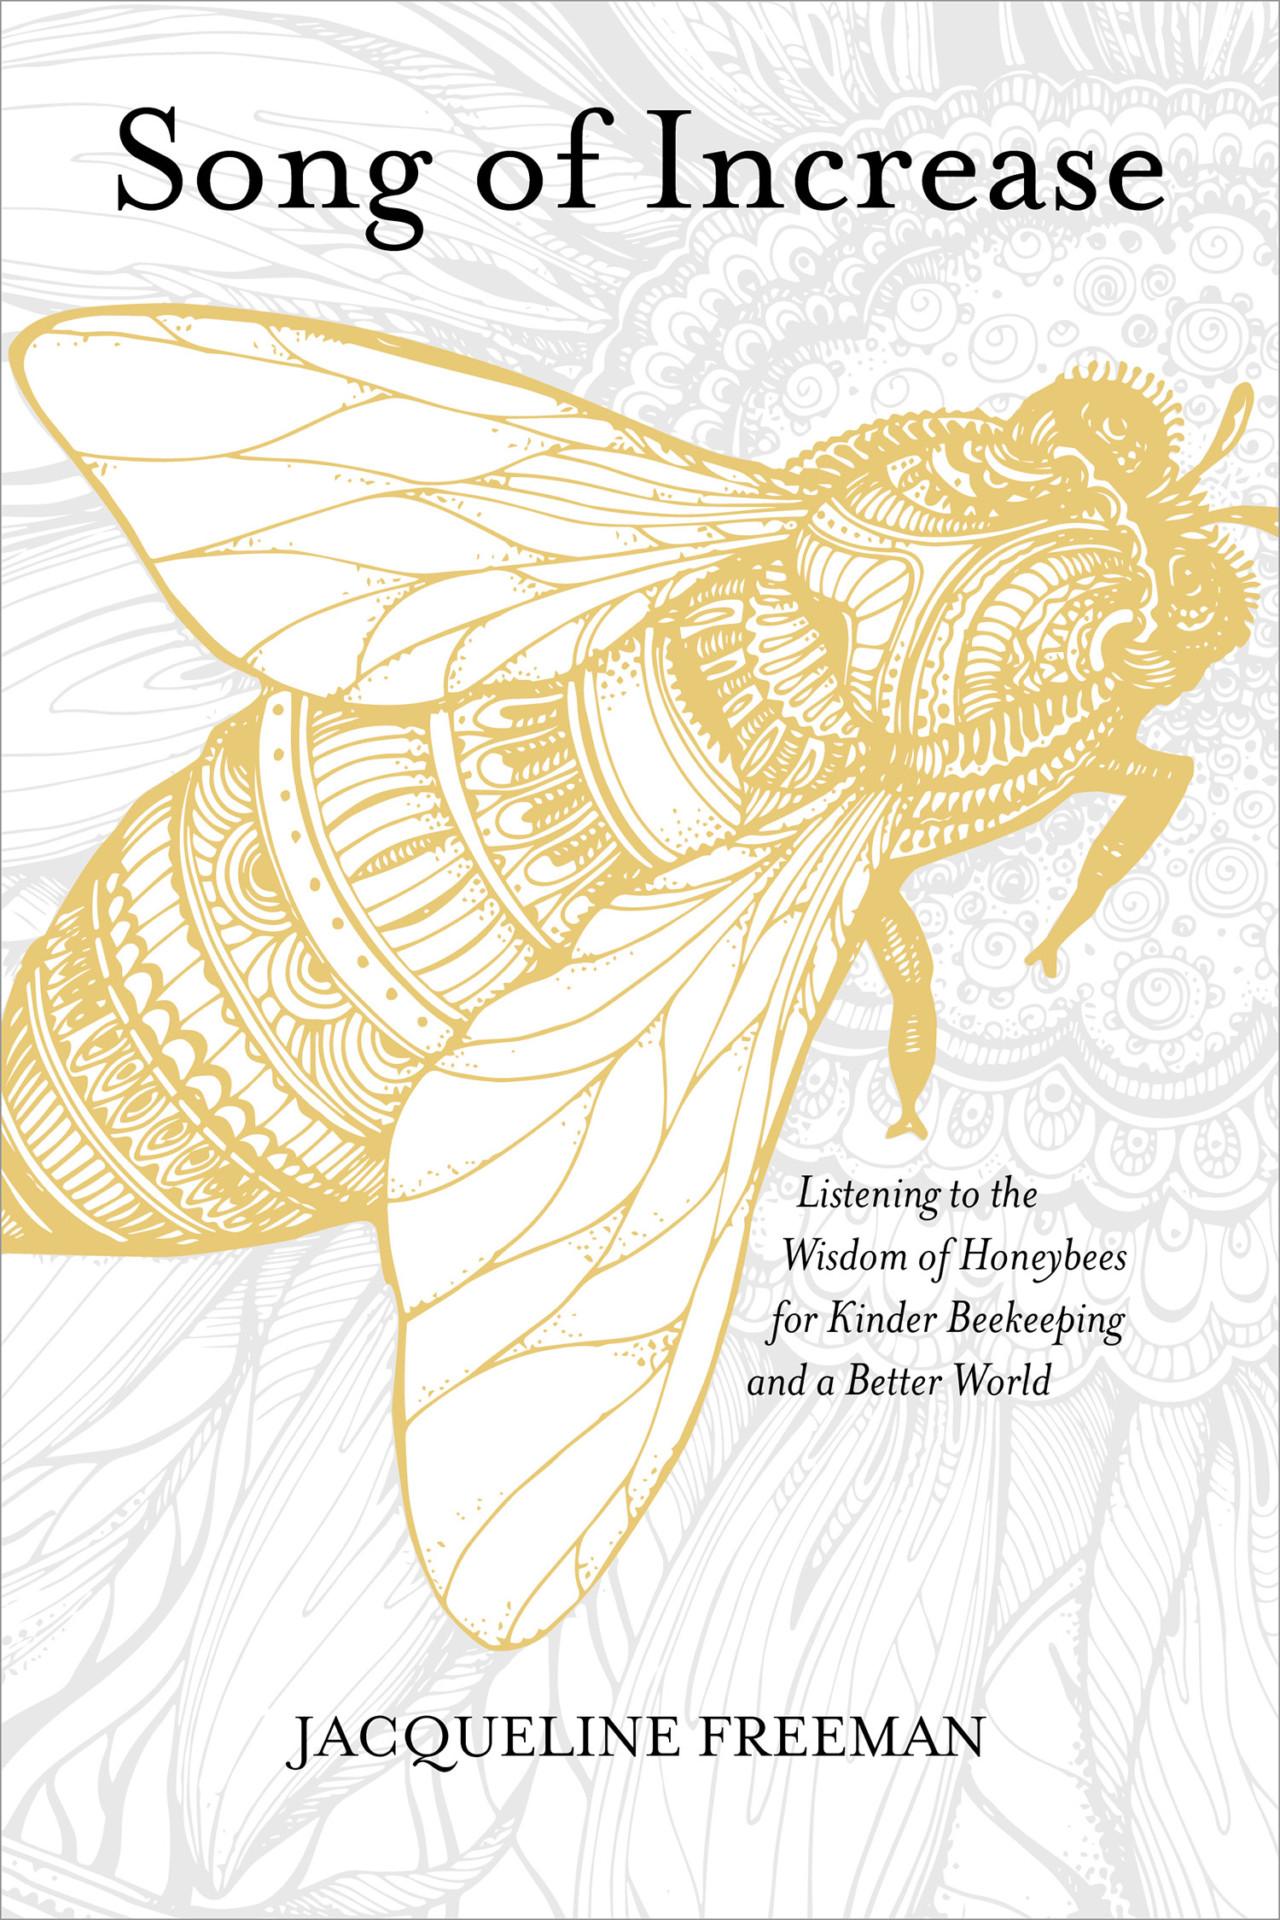 The Song of Increase: Listening to the Wisdom of Honeybees for Kinder Beekeeping and a Better World by Jacqueline Freeman